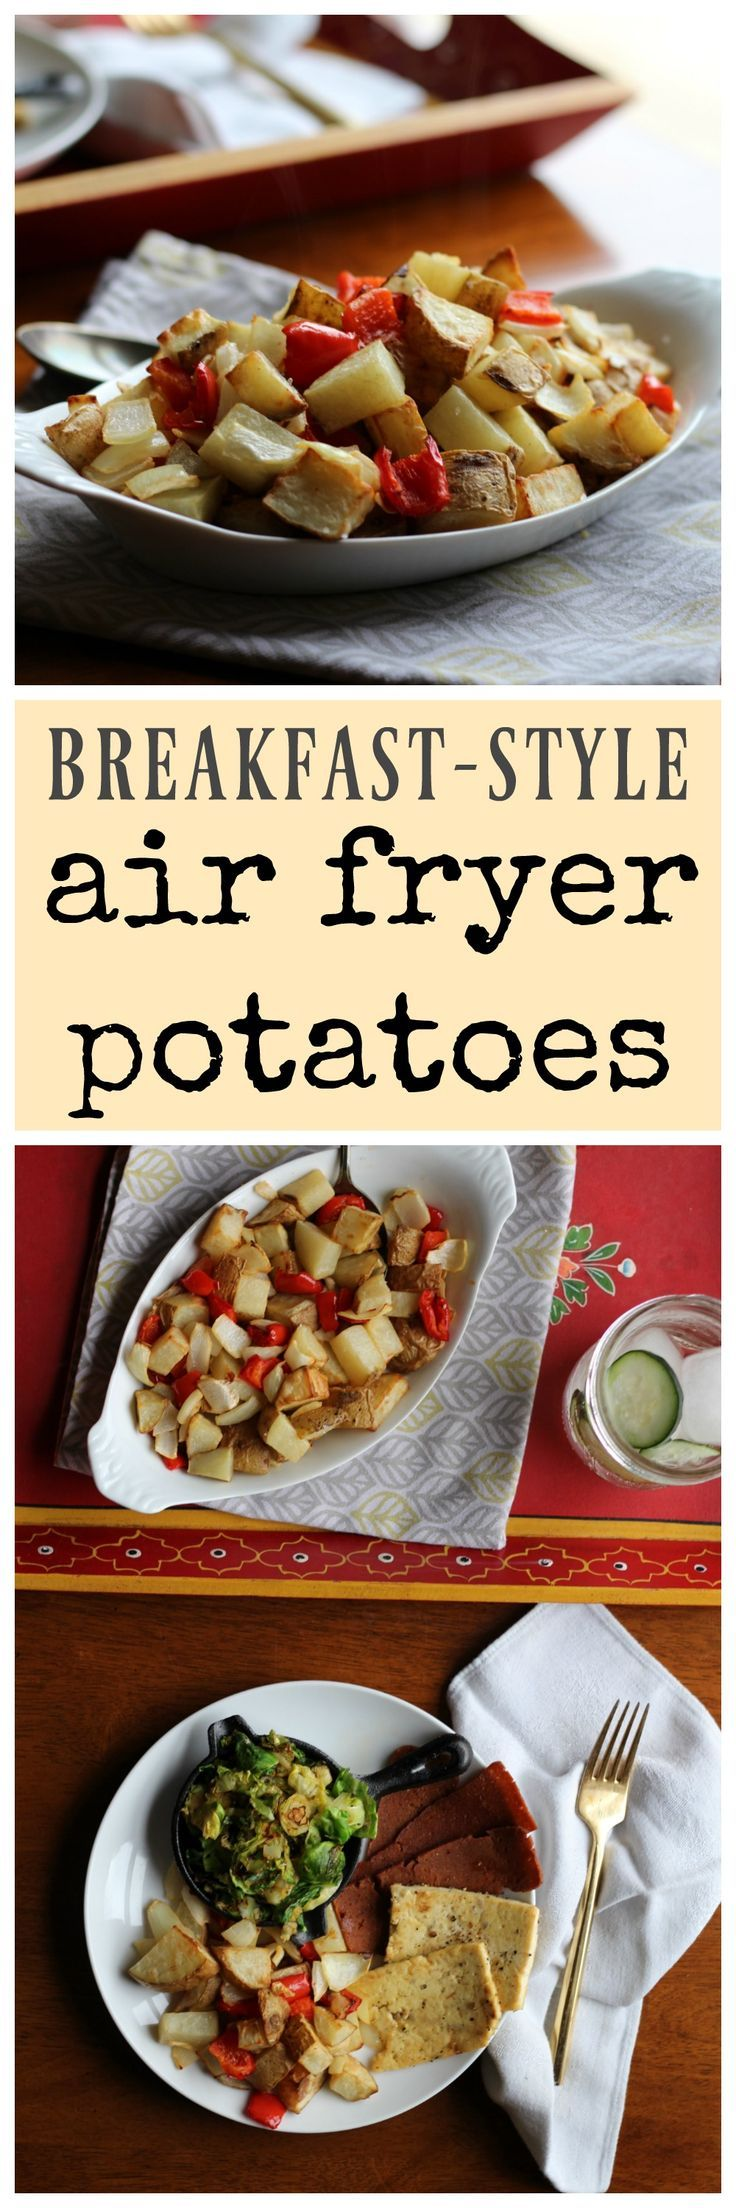 Breakfast-style air fryer potatoes: Make your morning meal easy with this delicious simple vegan and gluten-free recipe. | cadryskitchen.com